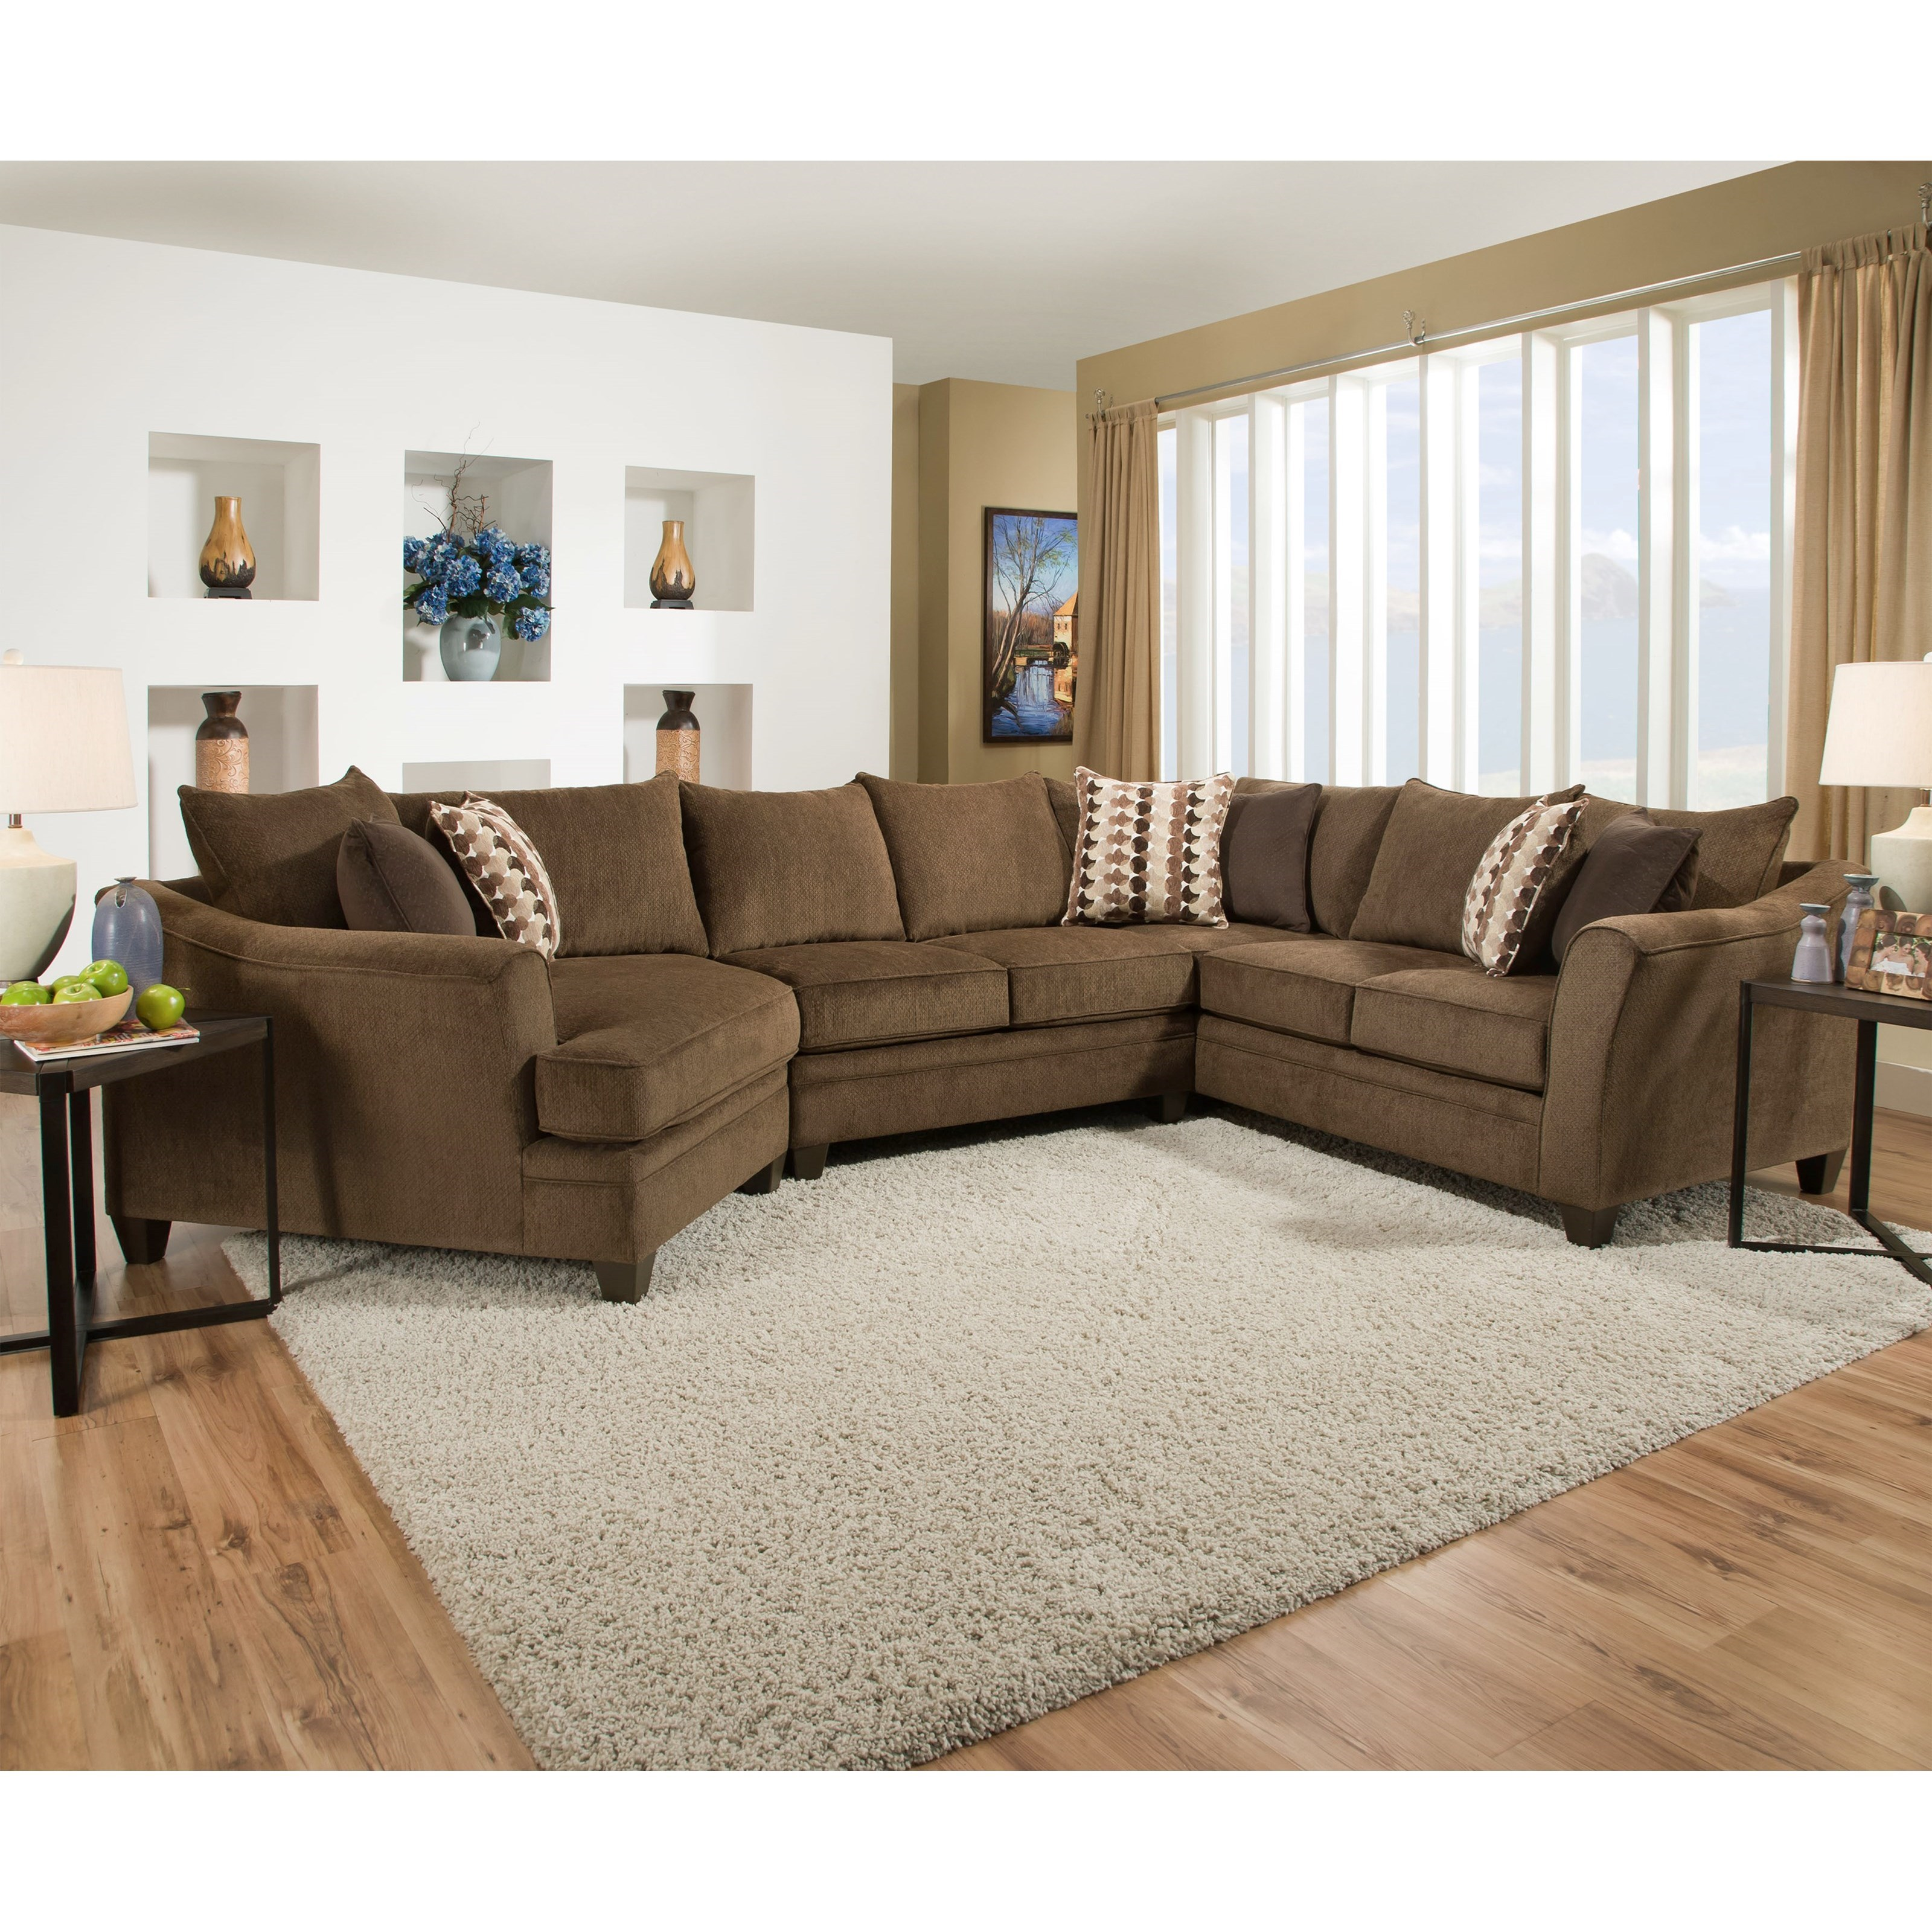 United Furniture Industries 6485 Transitional Sectional Sofa Item Number 6485wedge Armlesslvseat Psofa